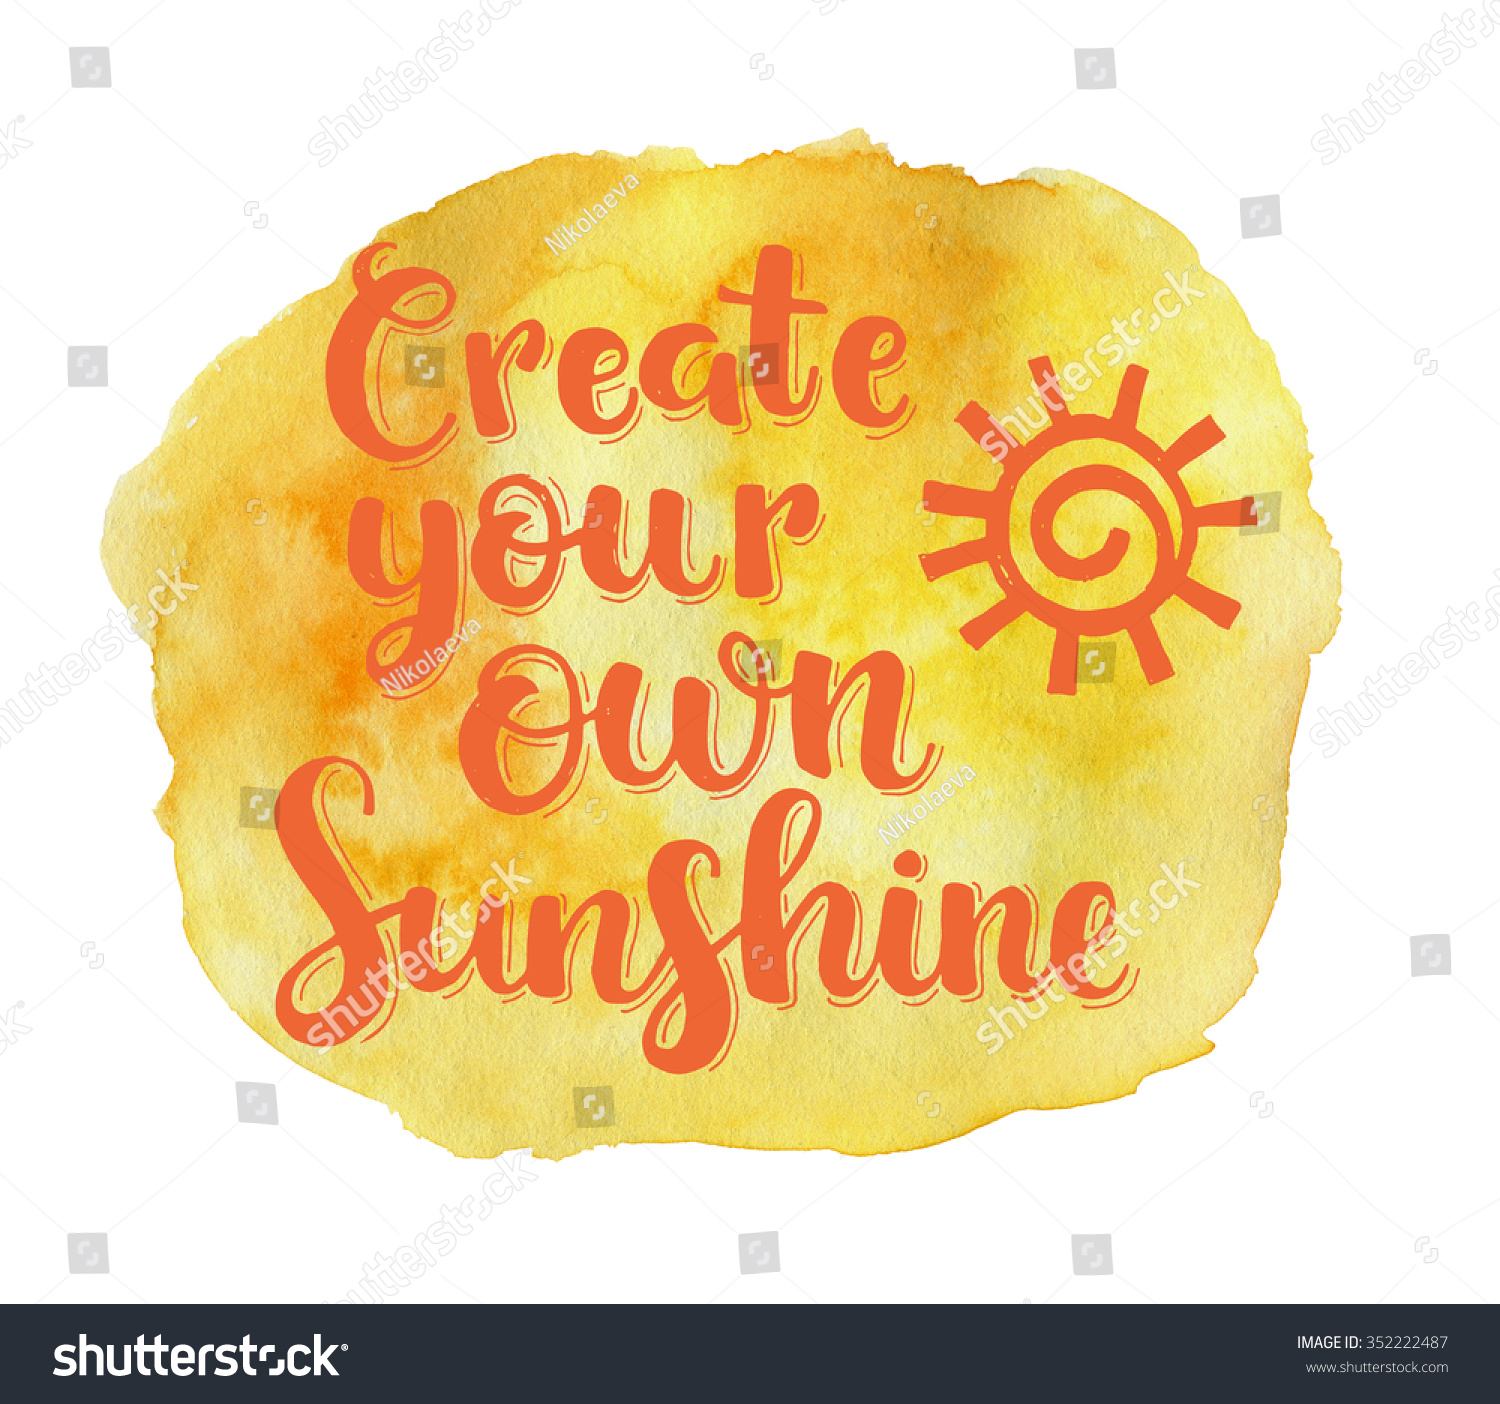 Create Your Own Sunshine Hand Drawn Stock Illustration 352222487